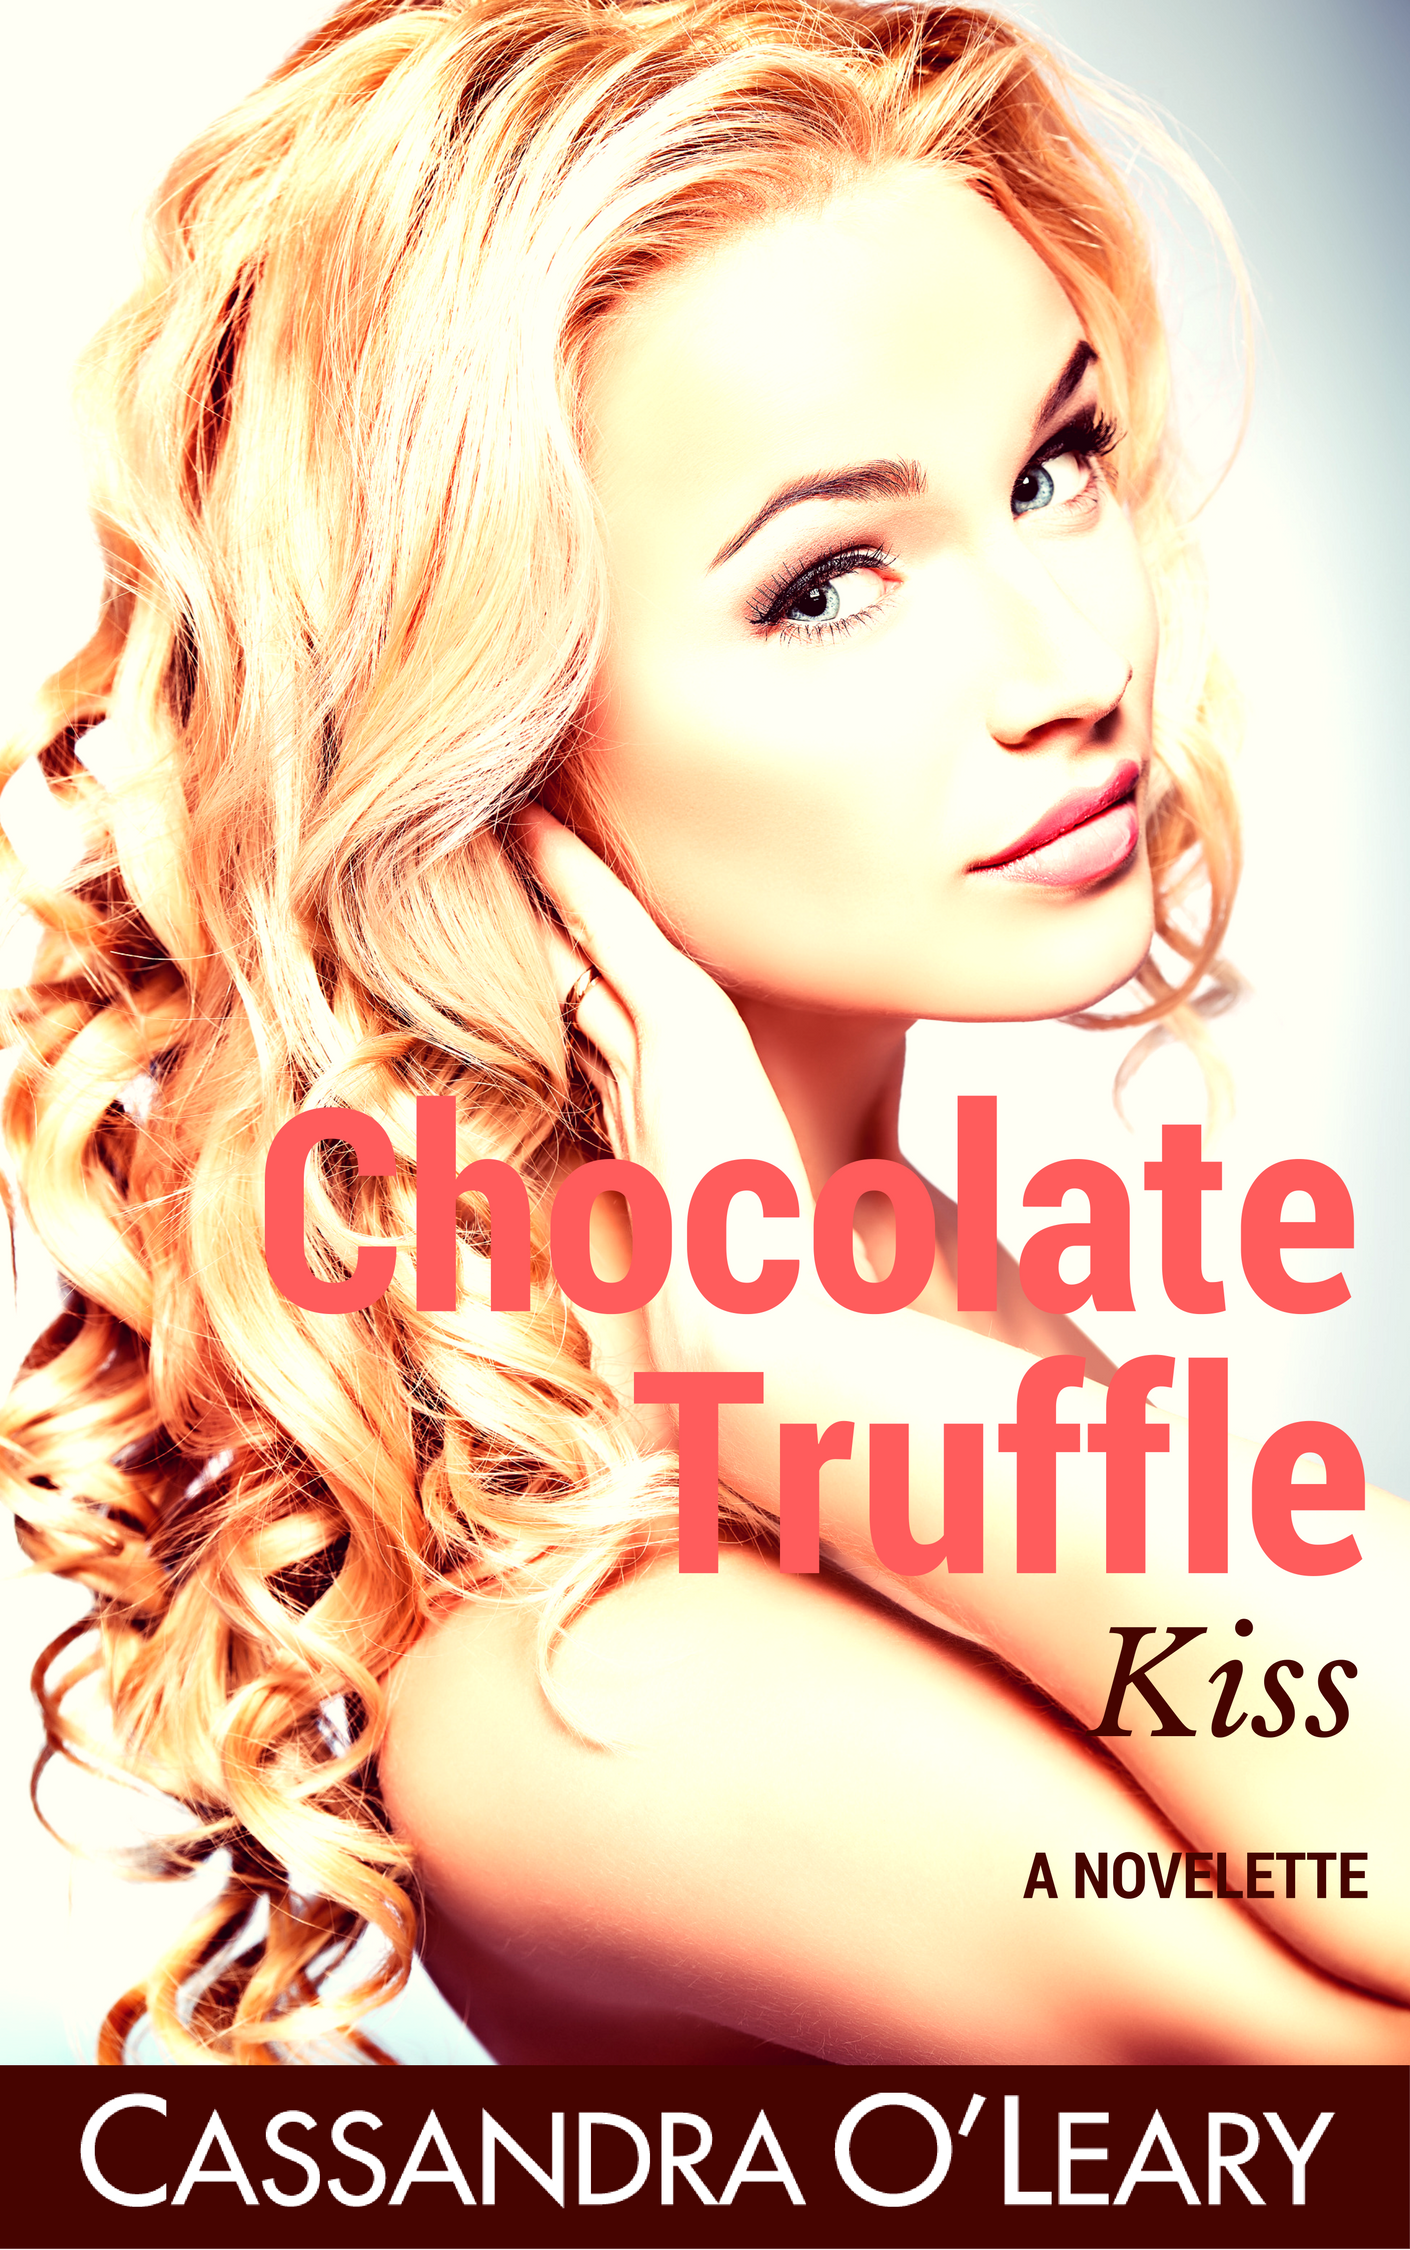 Chocolate Truffle Kiss cover design